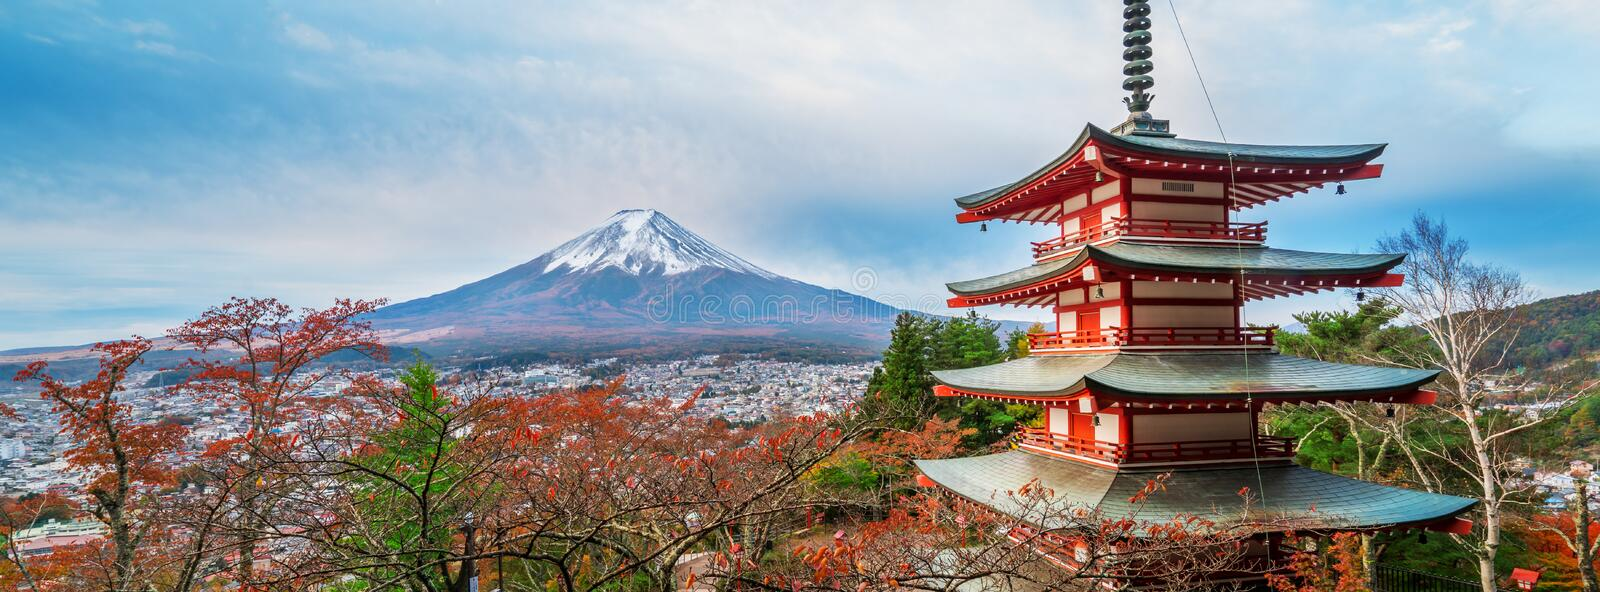 Mount Fuji, Chureito Pagoda in Autumn stock photo